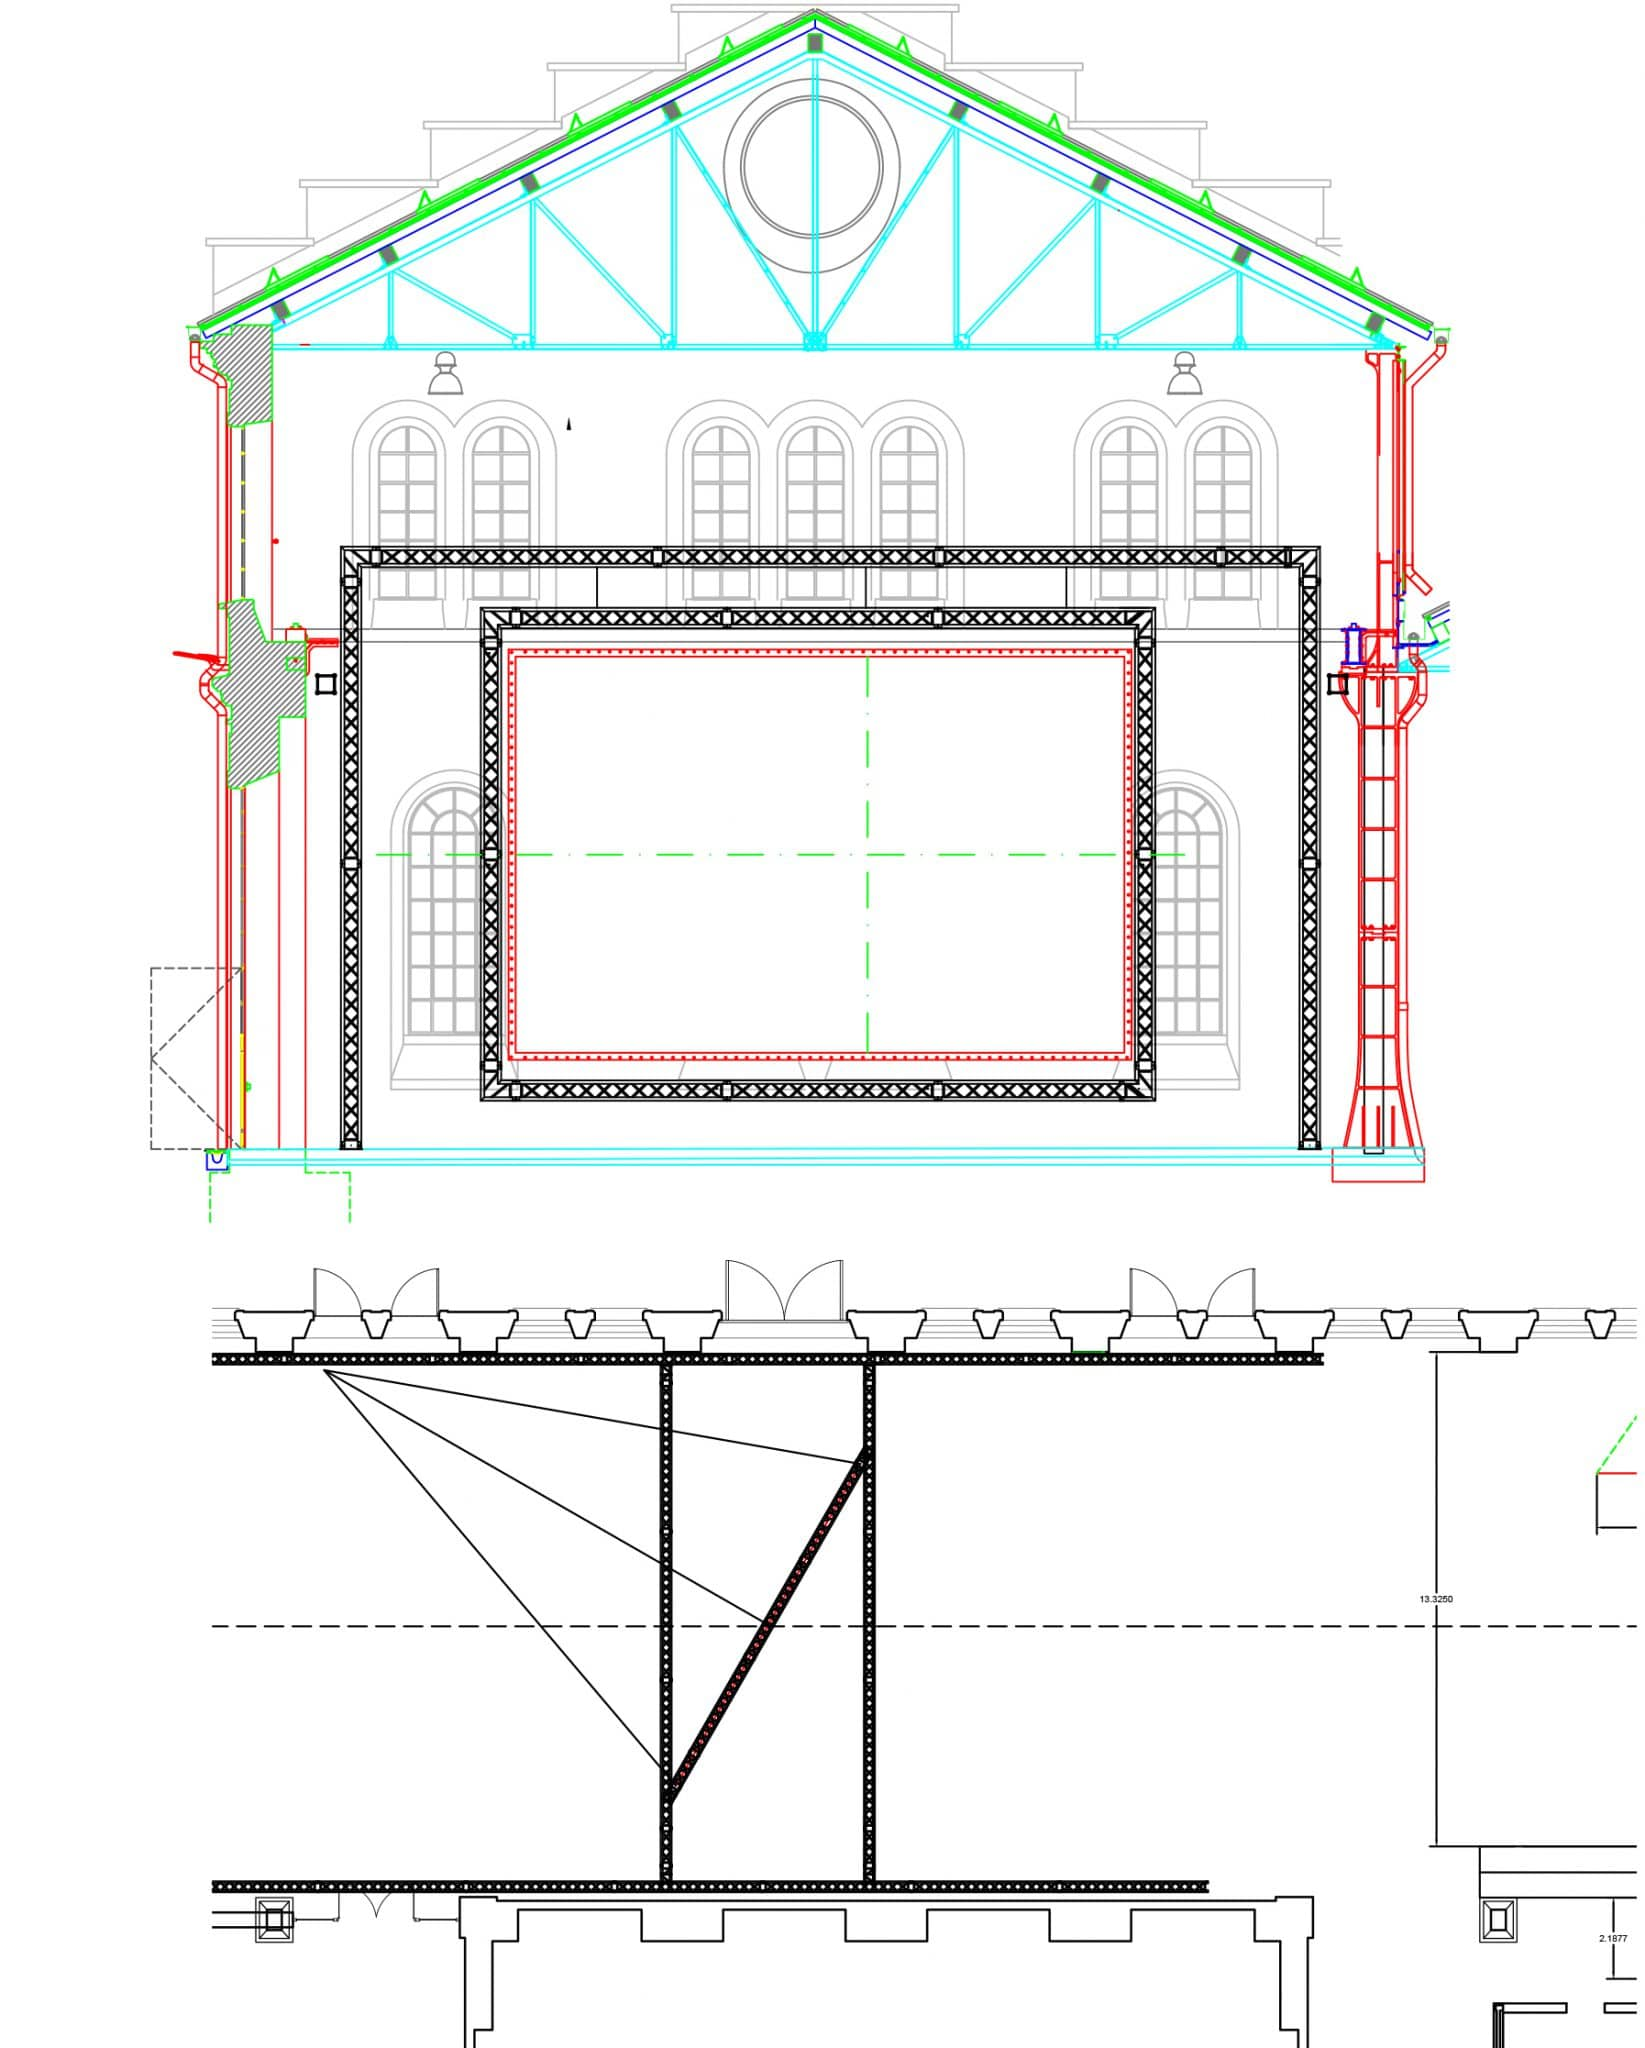 Susan Hiller, exhibition designer technical drawing projection screen